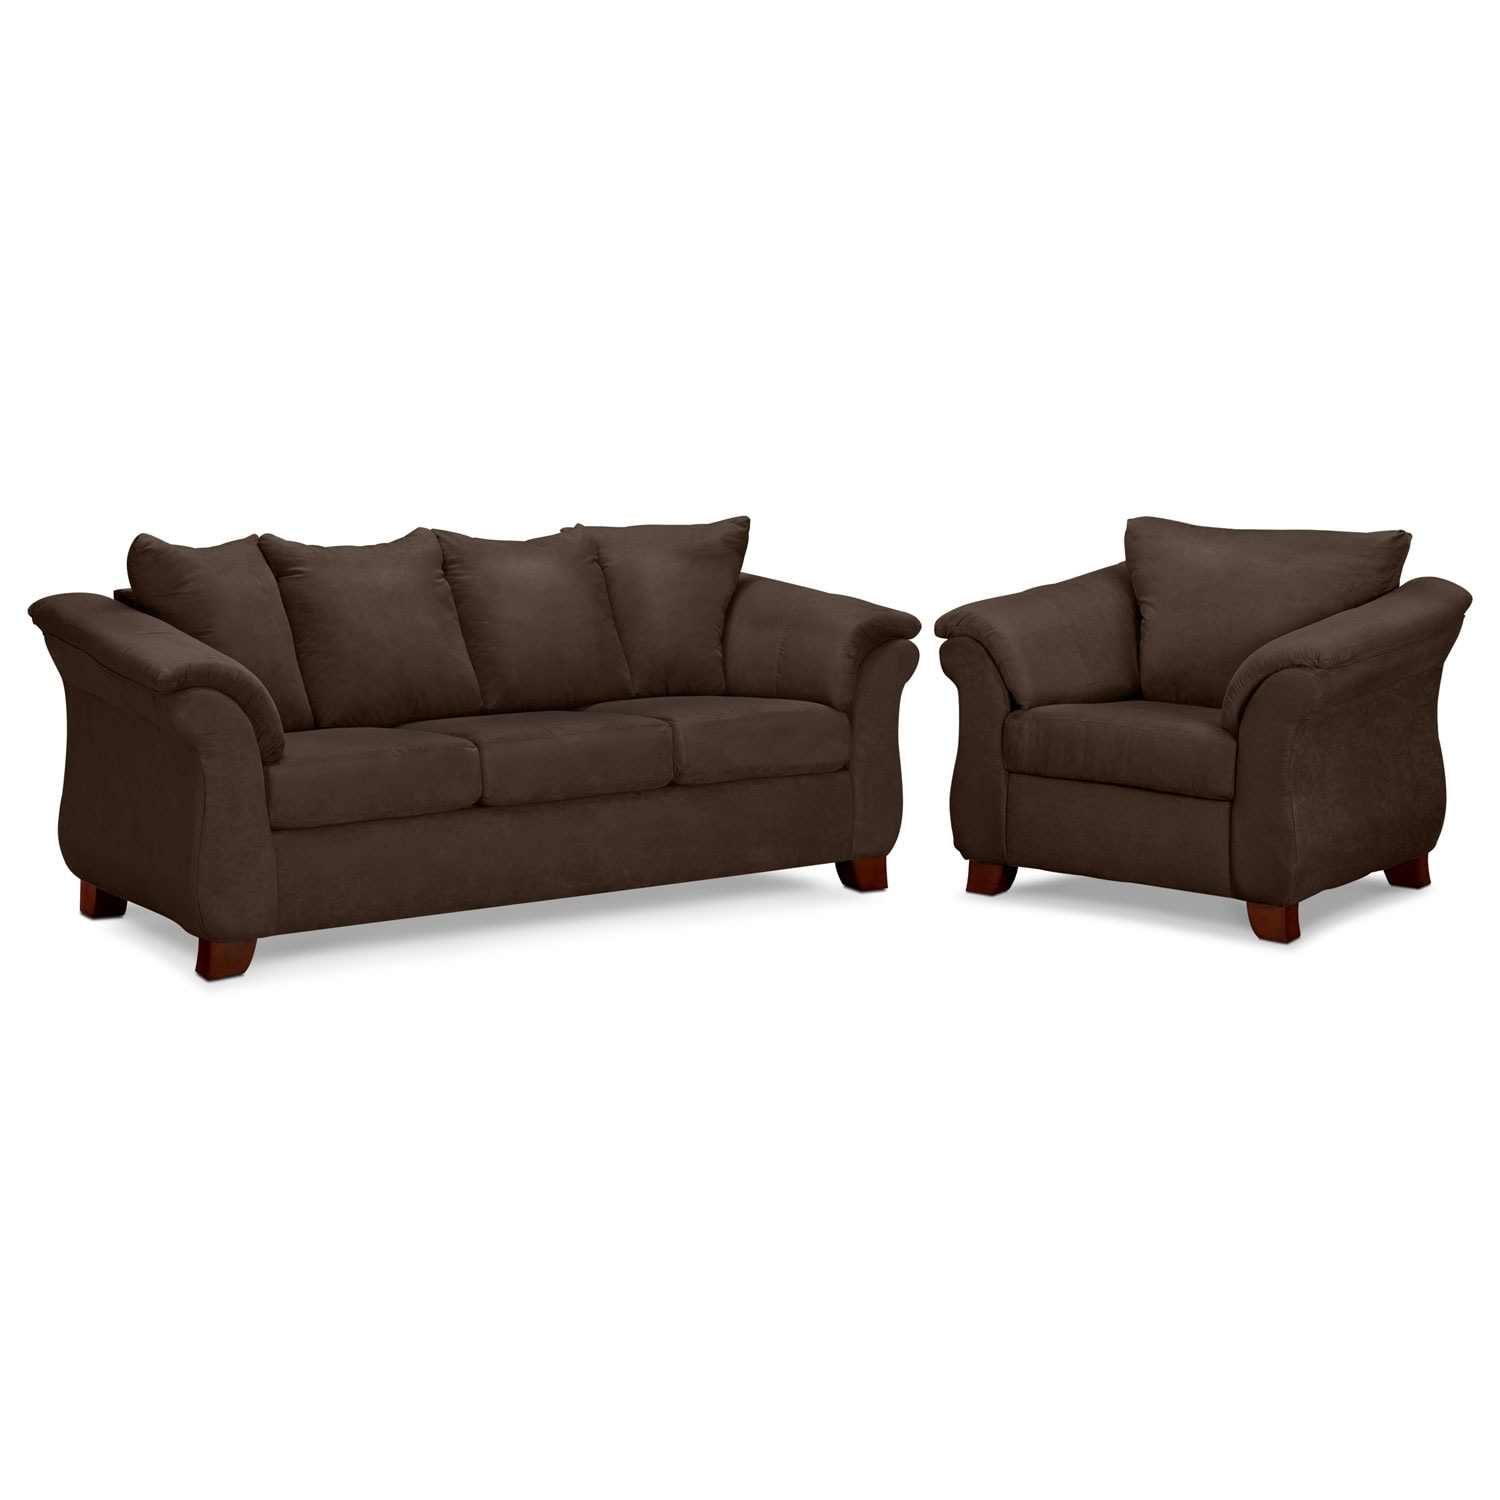 adrian sofa and chair set chocolate american signature furniture. Black Bedroom Furniture Sets. Home Design Ideas